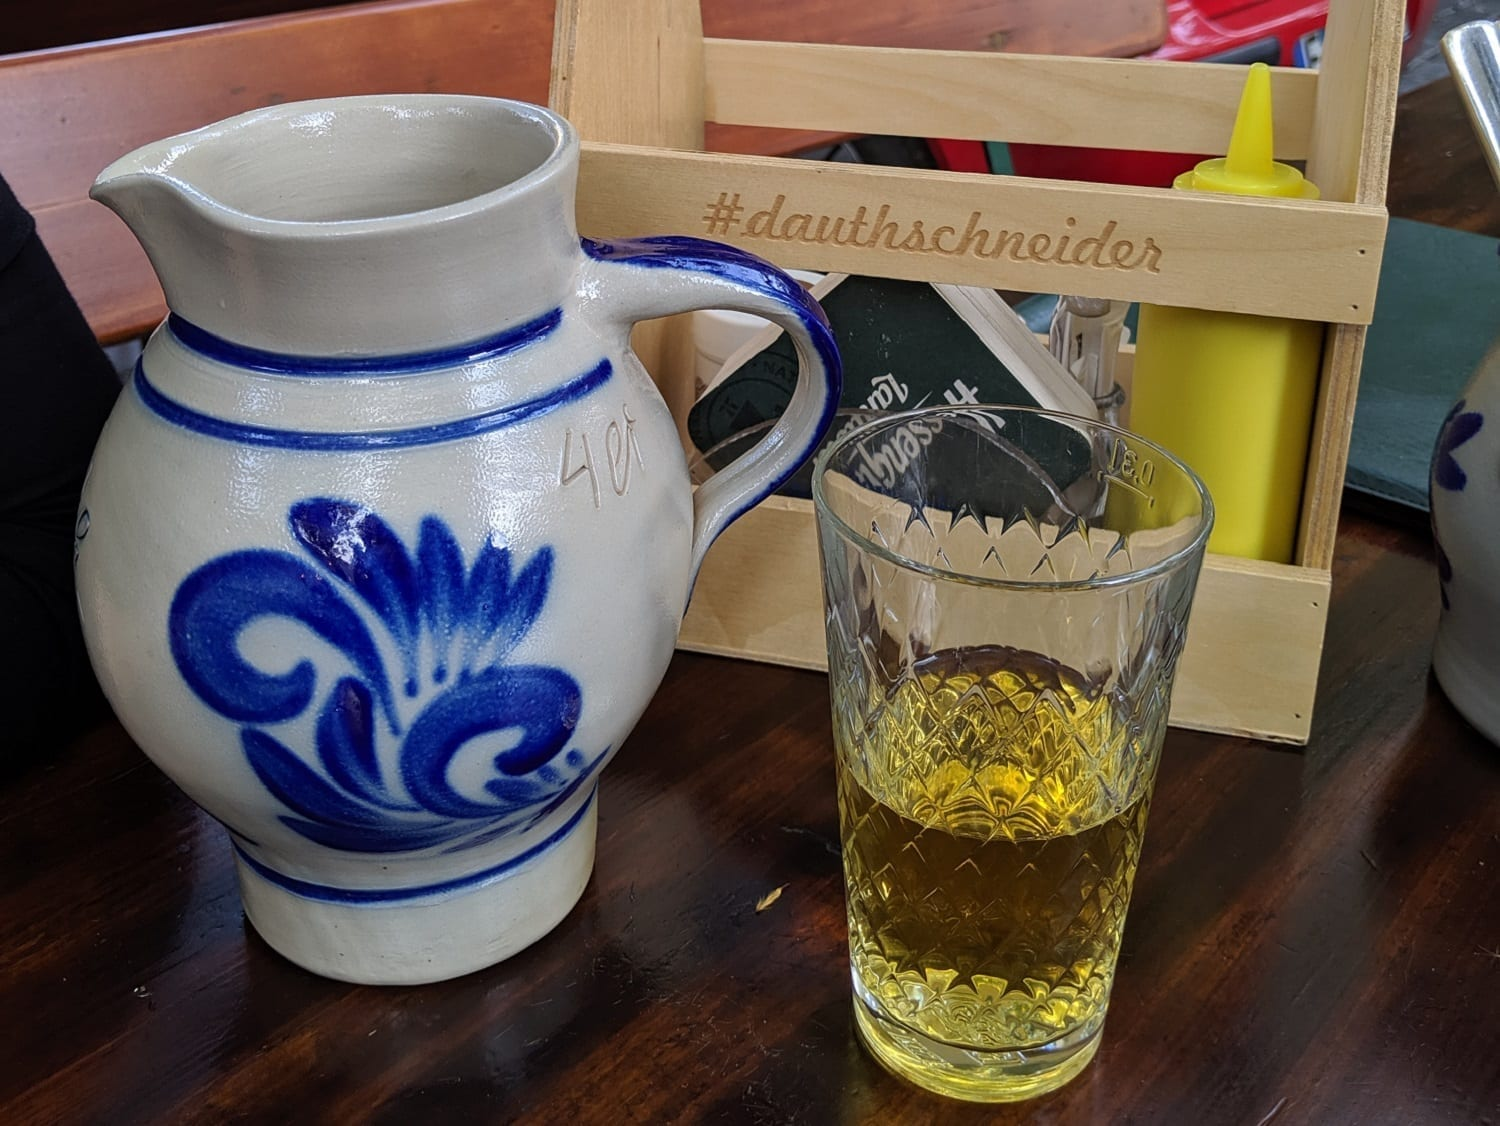 What is Apfelwein?